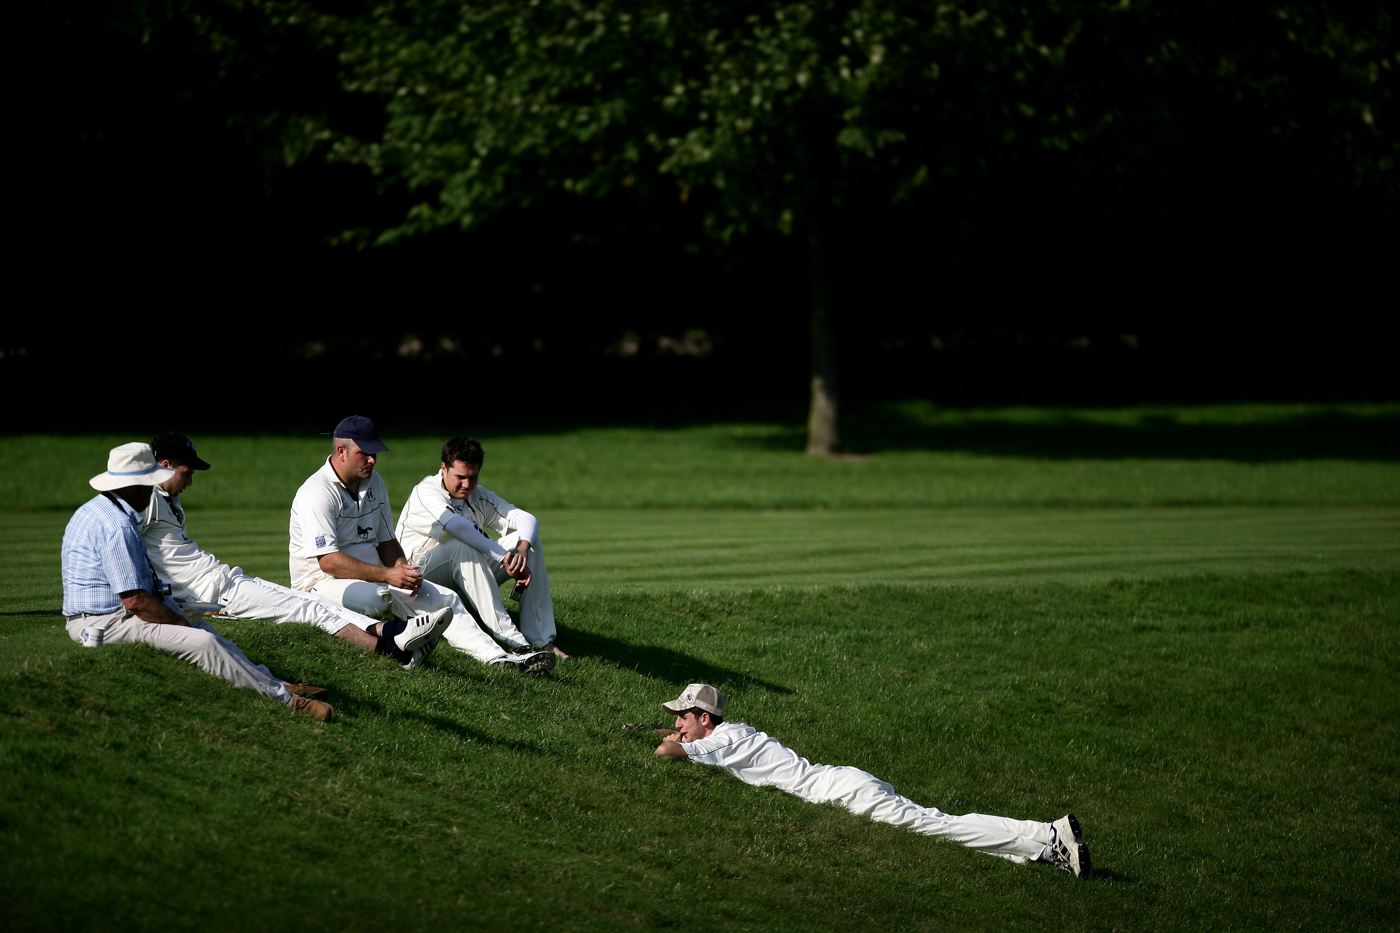 Players sit by the boundary